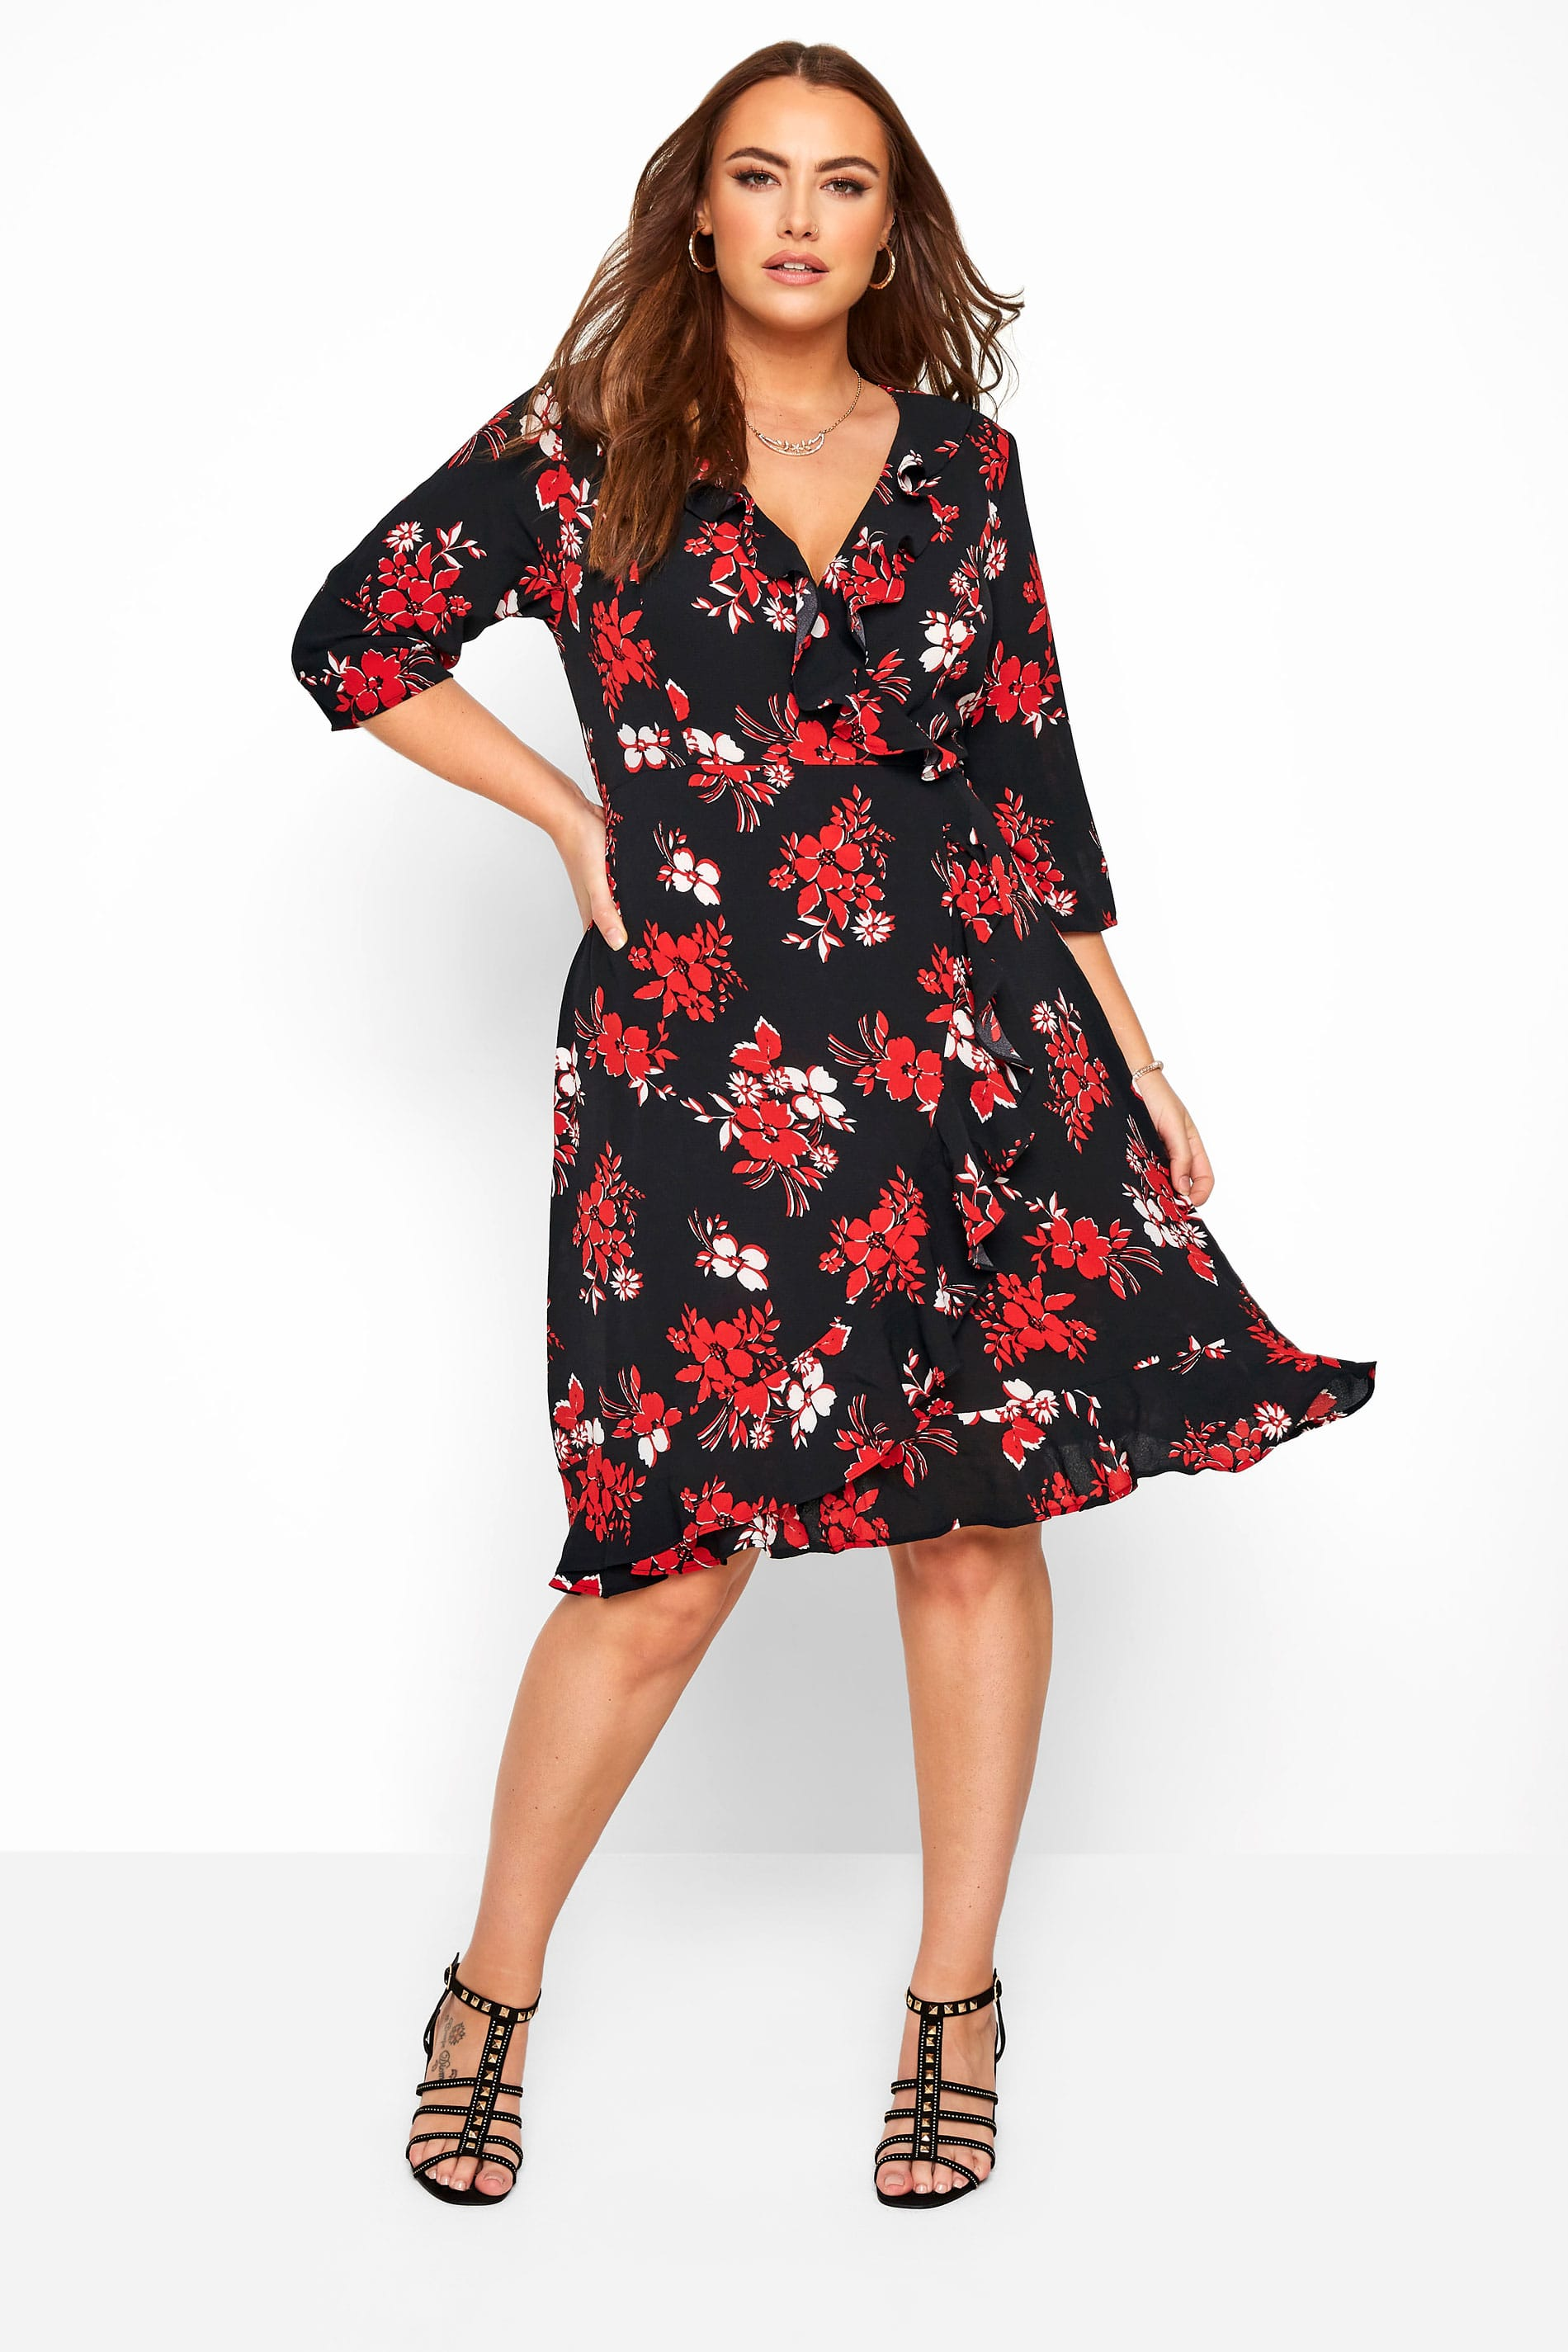 Black & Red Floral Frill Wrap Dress